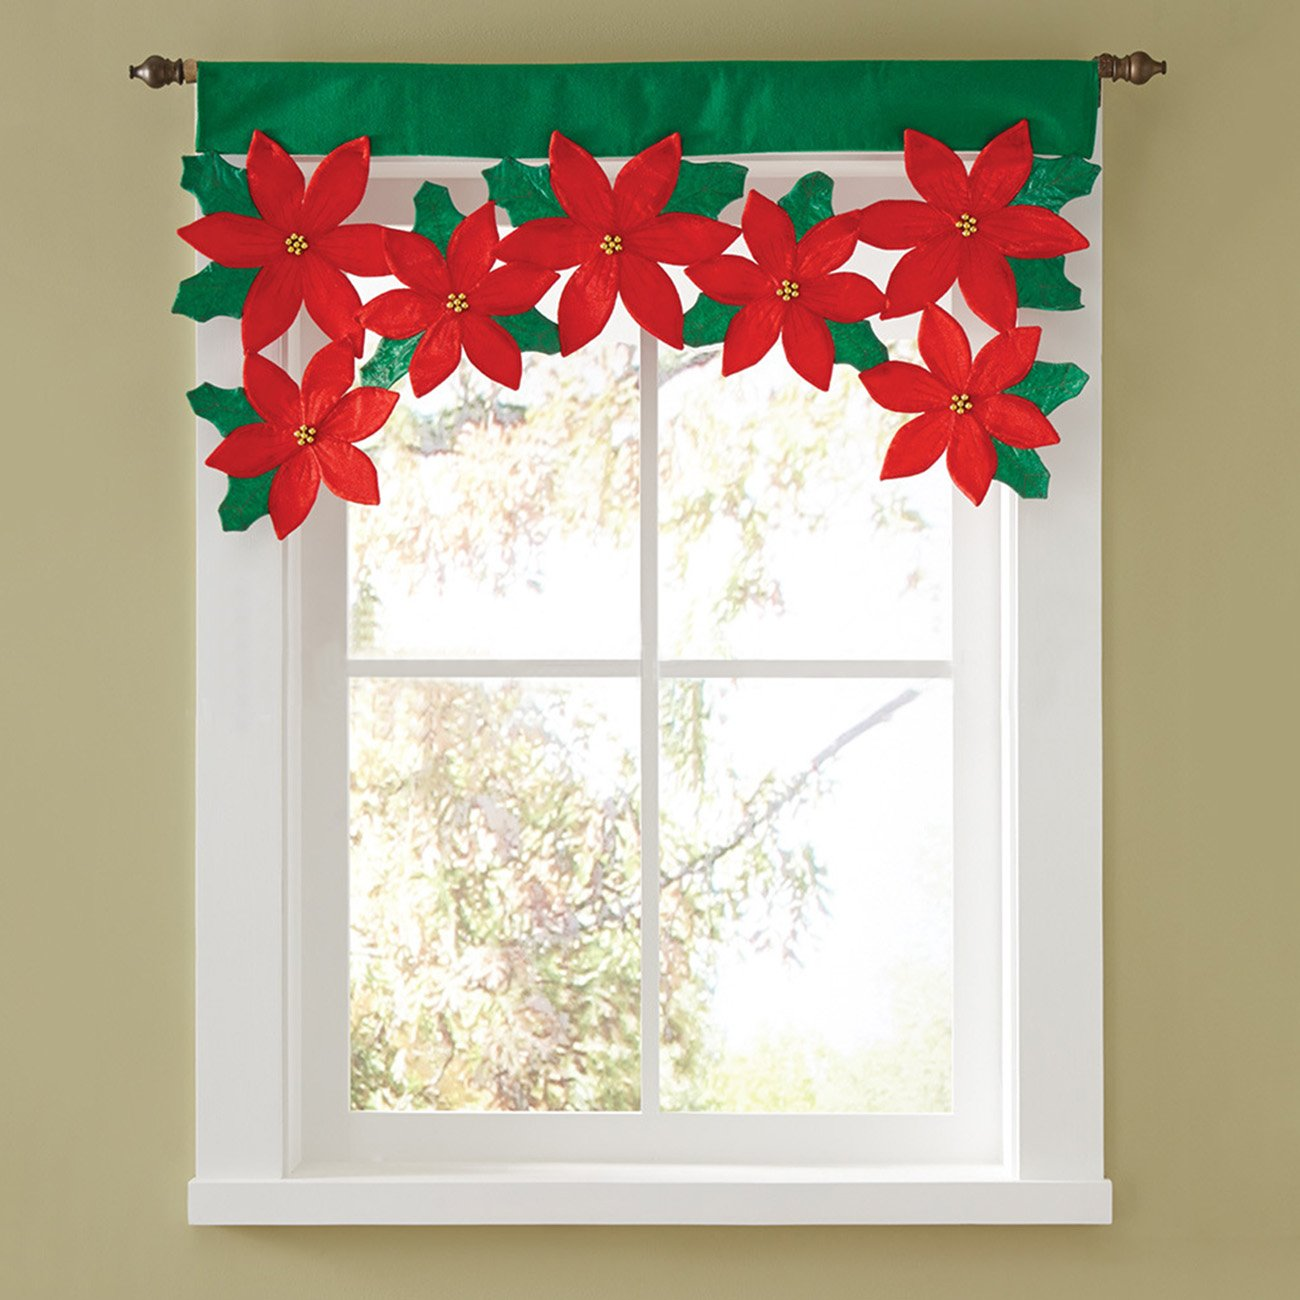 THEE Christmas Flower Curtain Valance Window Decorations Decals